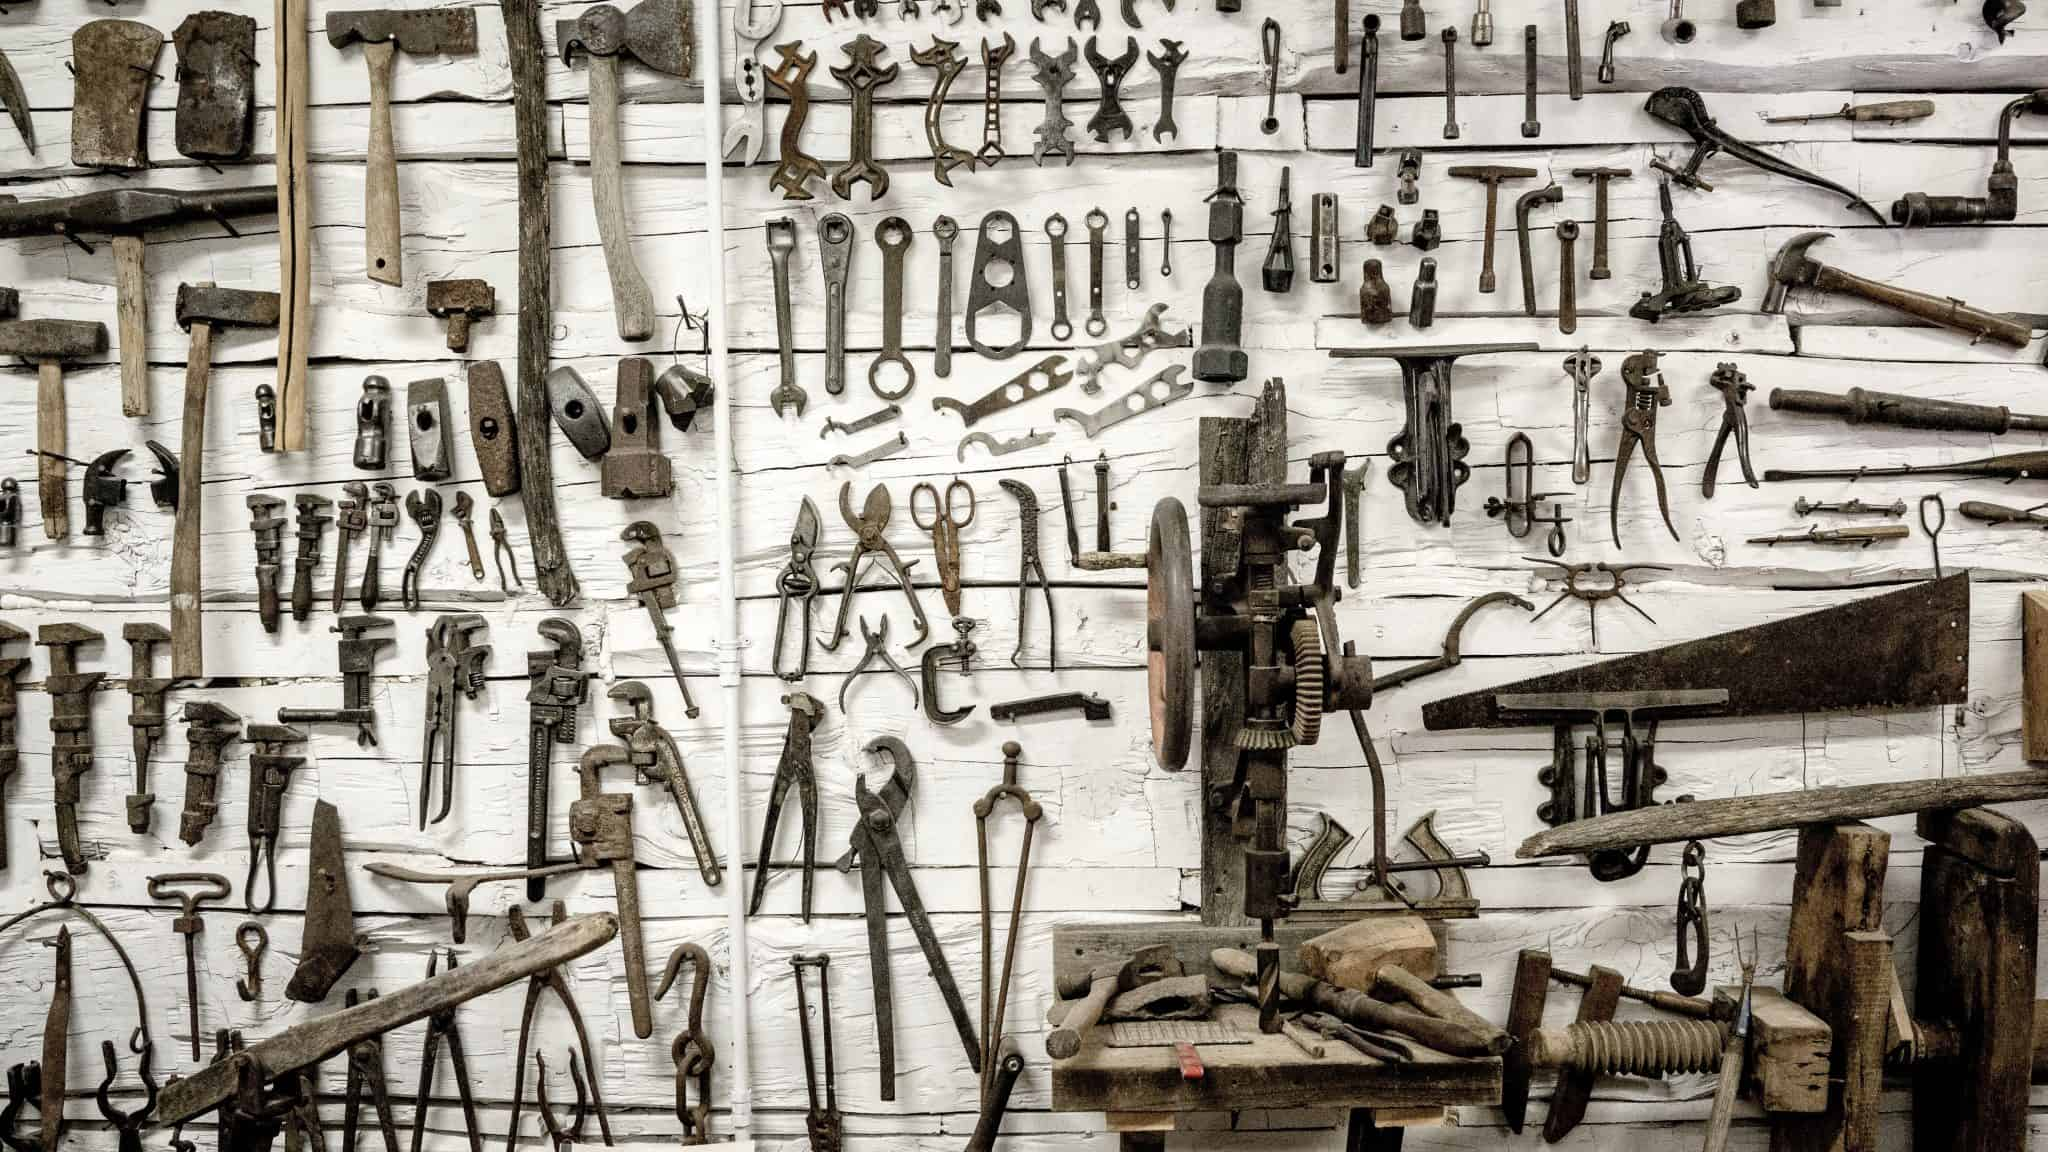 wall filled with various tools hung from it including axes and spanners